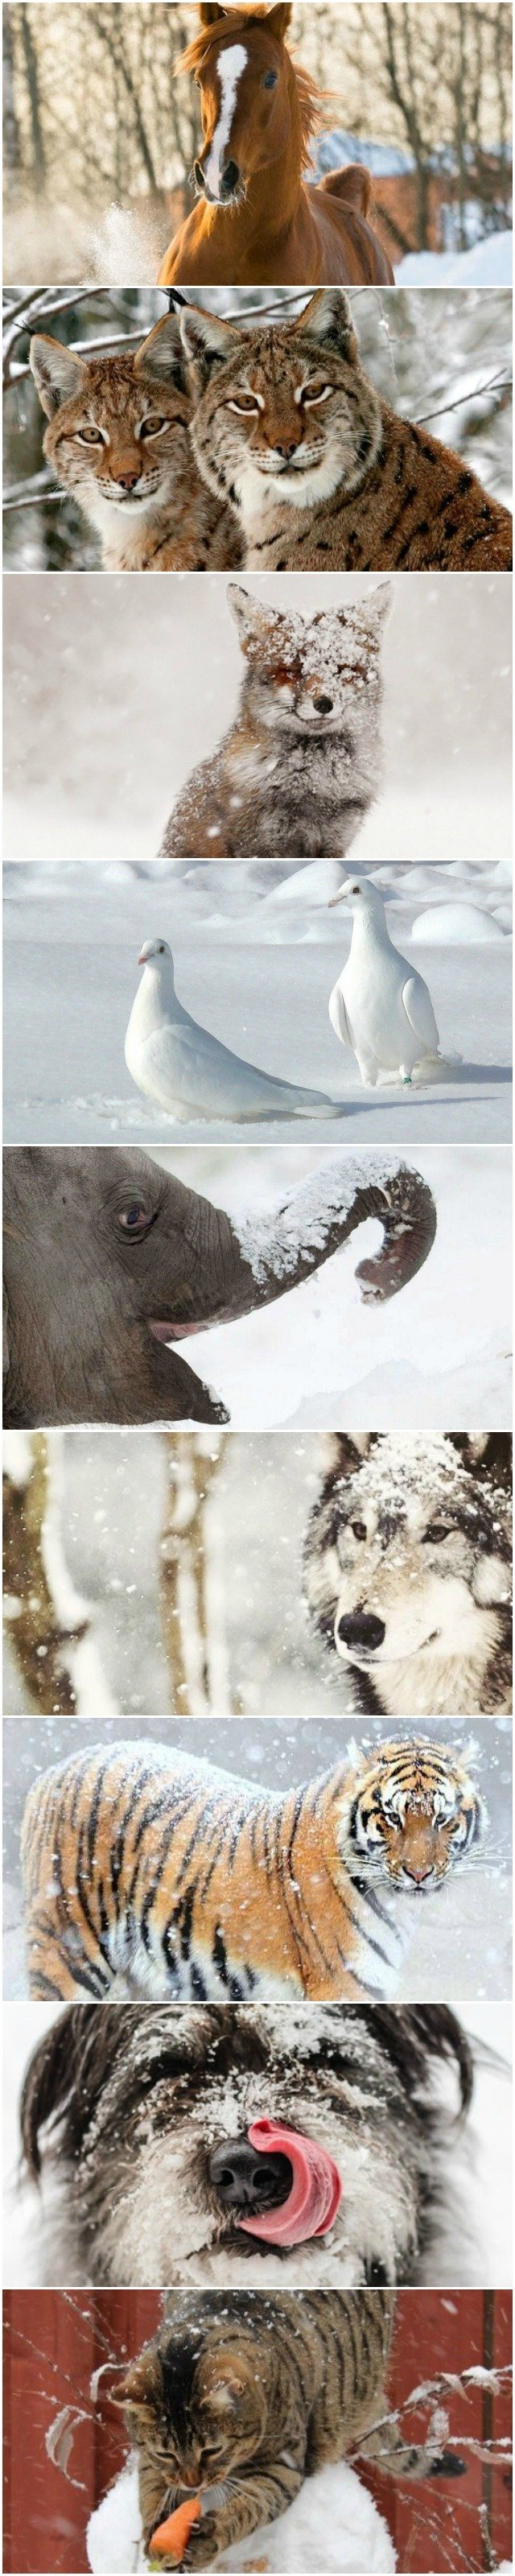 animals-enjoying-the-snow